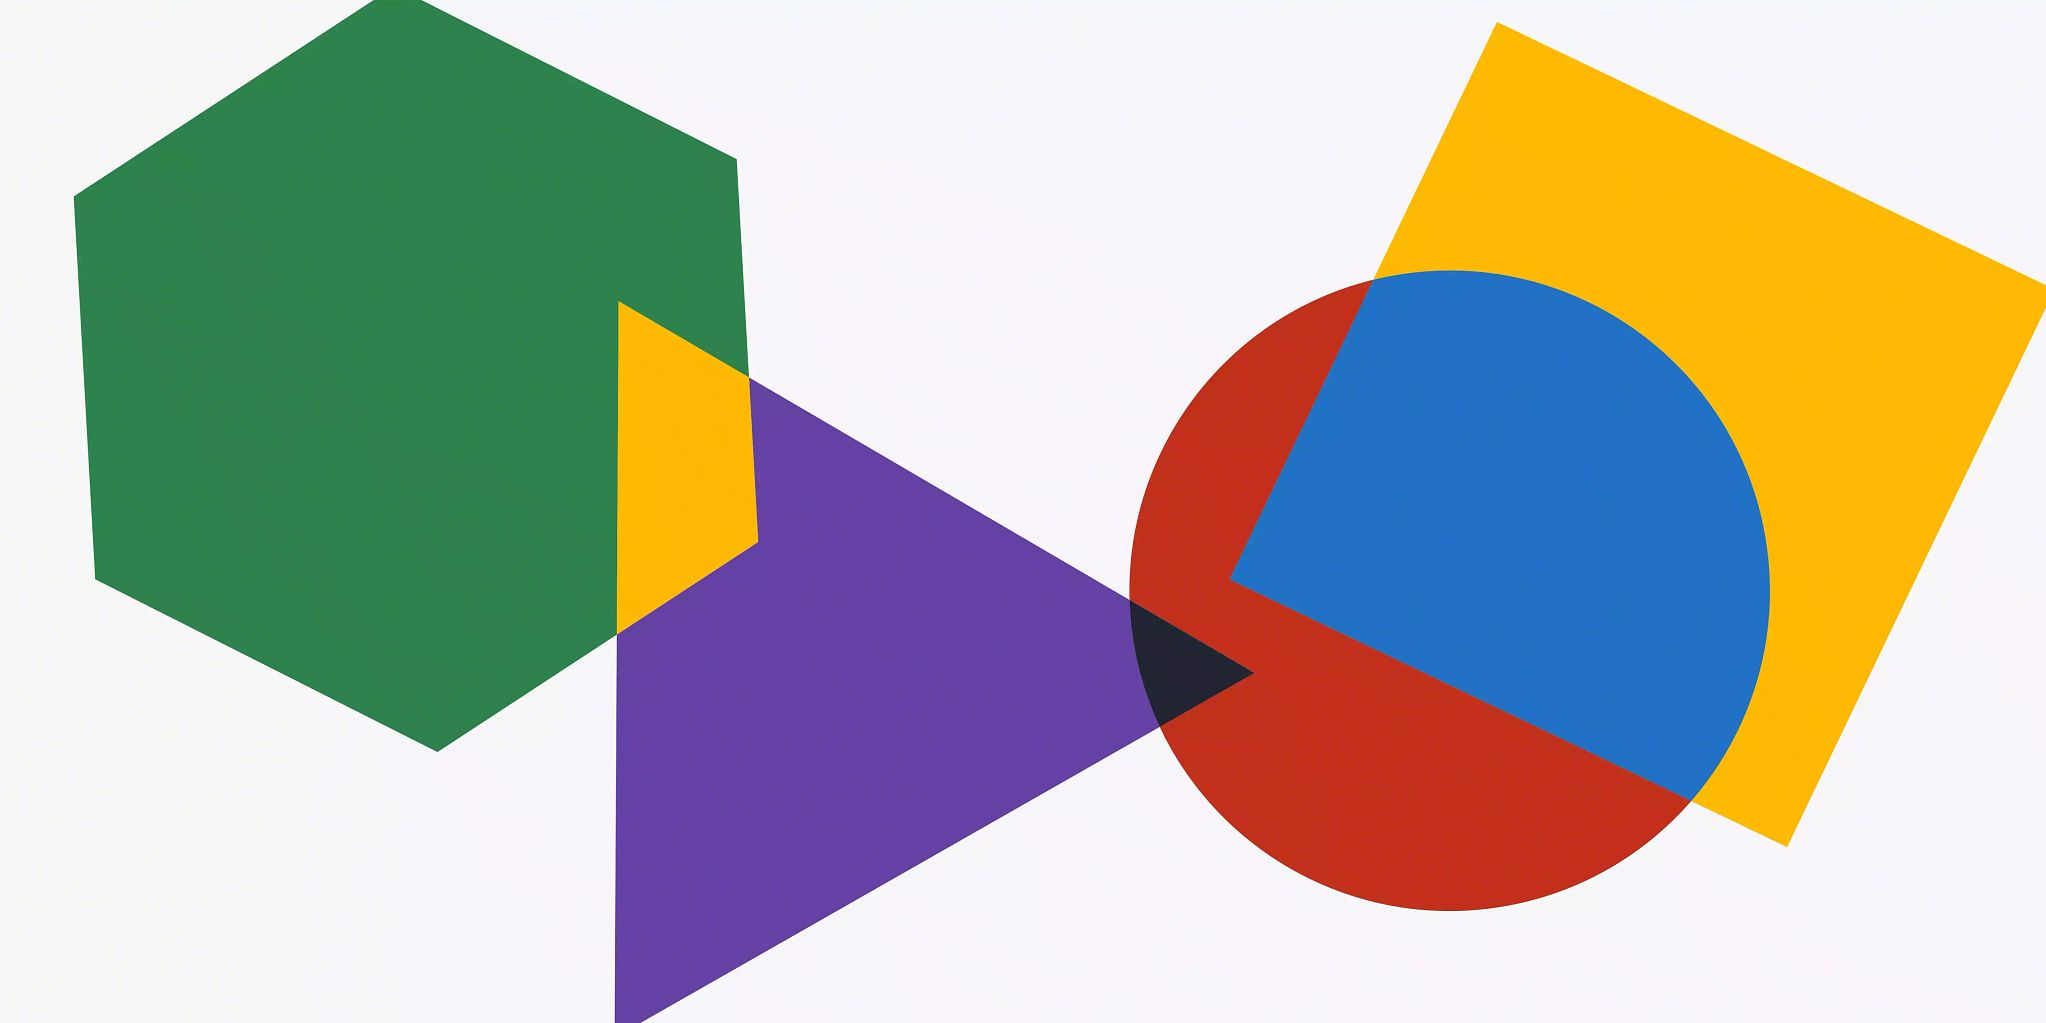 What is product branding? —Article header image shows a green hexagon, purple triangle, red circle, and a yellow square overlapping across the length and width of the graphic. Where they overlap the colors mix to form yellow (from green and purple) and blue (from yellow and red).